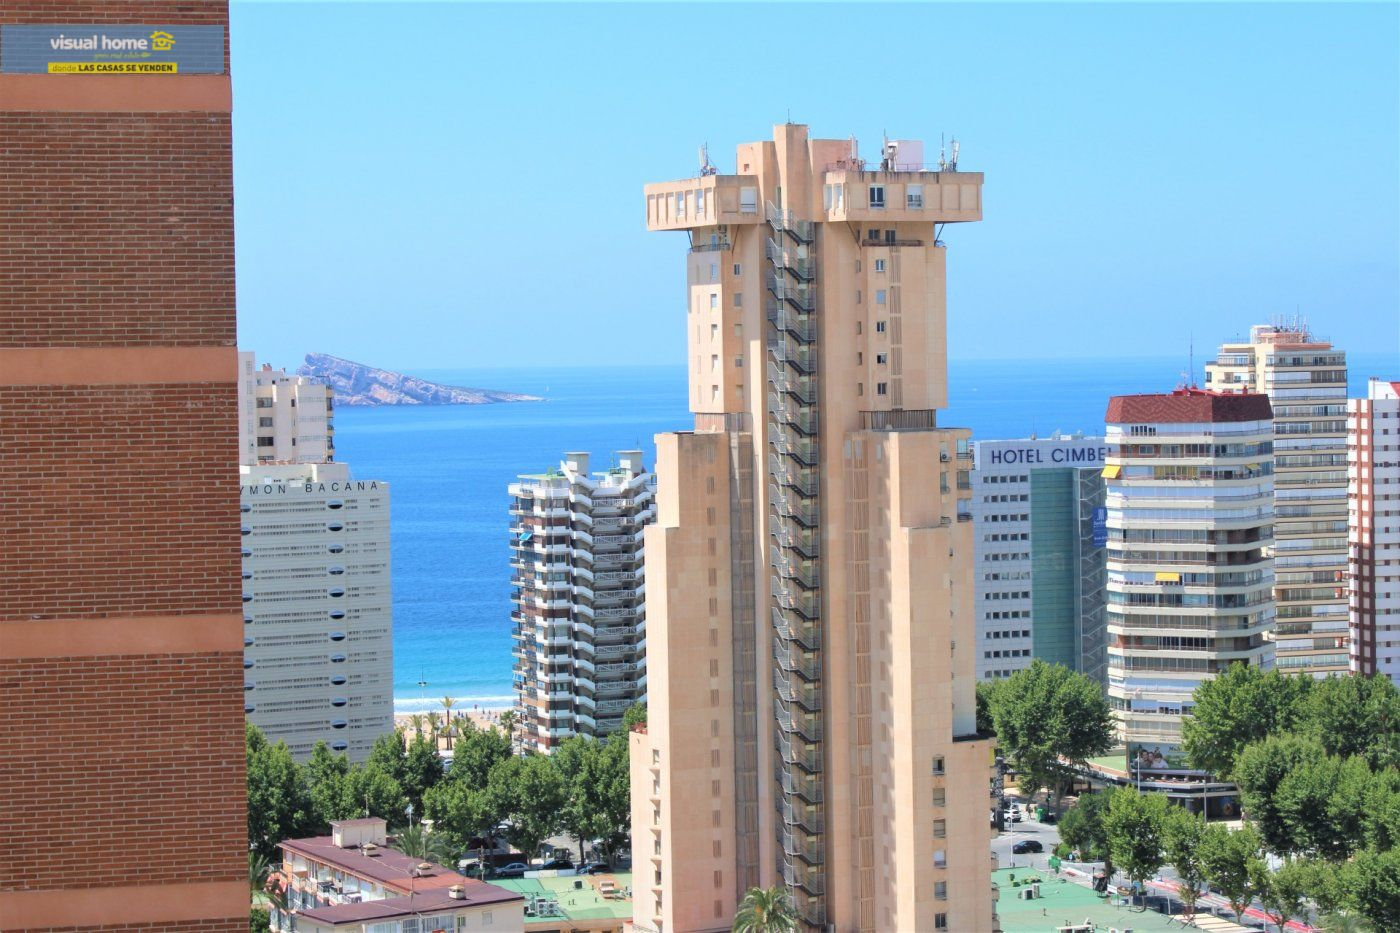 APARTAMENTO CON VISTAS AL MAR IDEAL PARA VACACIONES EN ZONA LEVANTE! PARKING Y PISCINA!!!